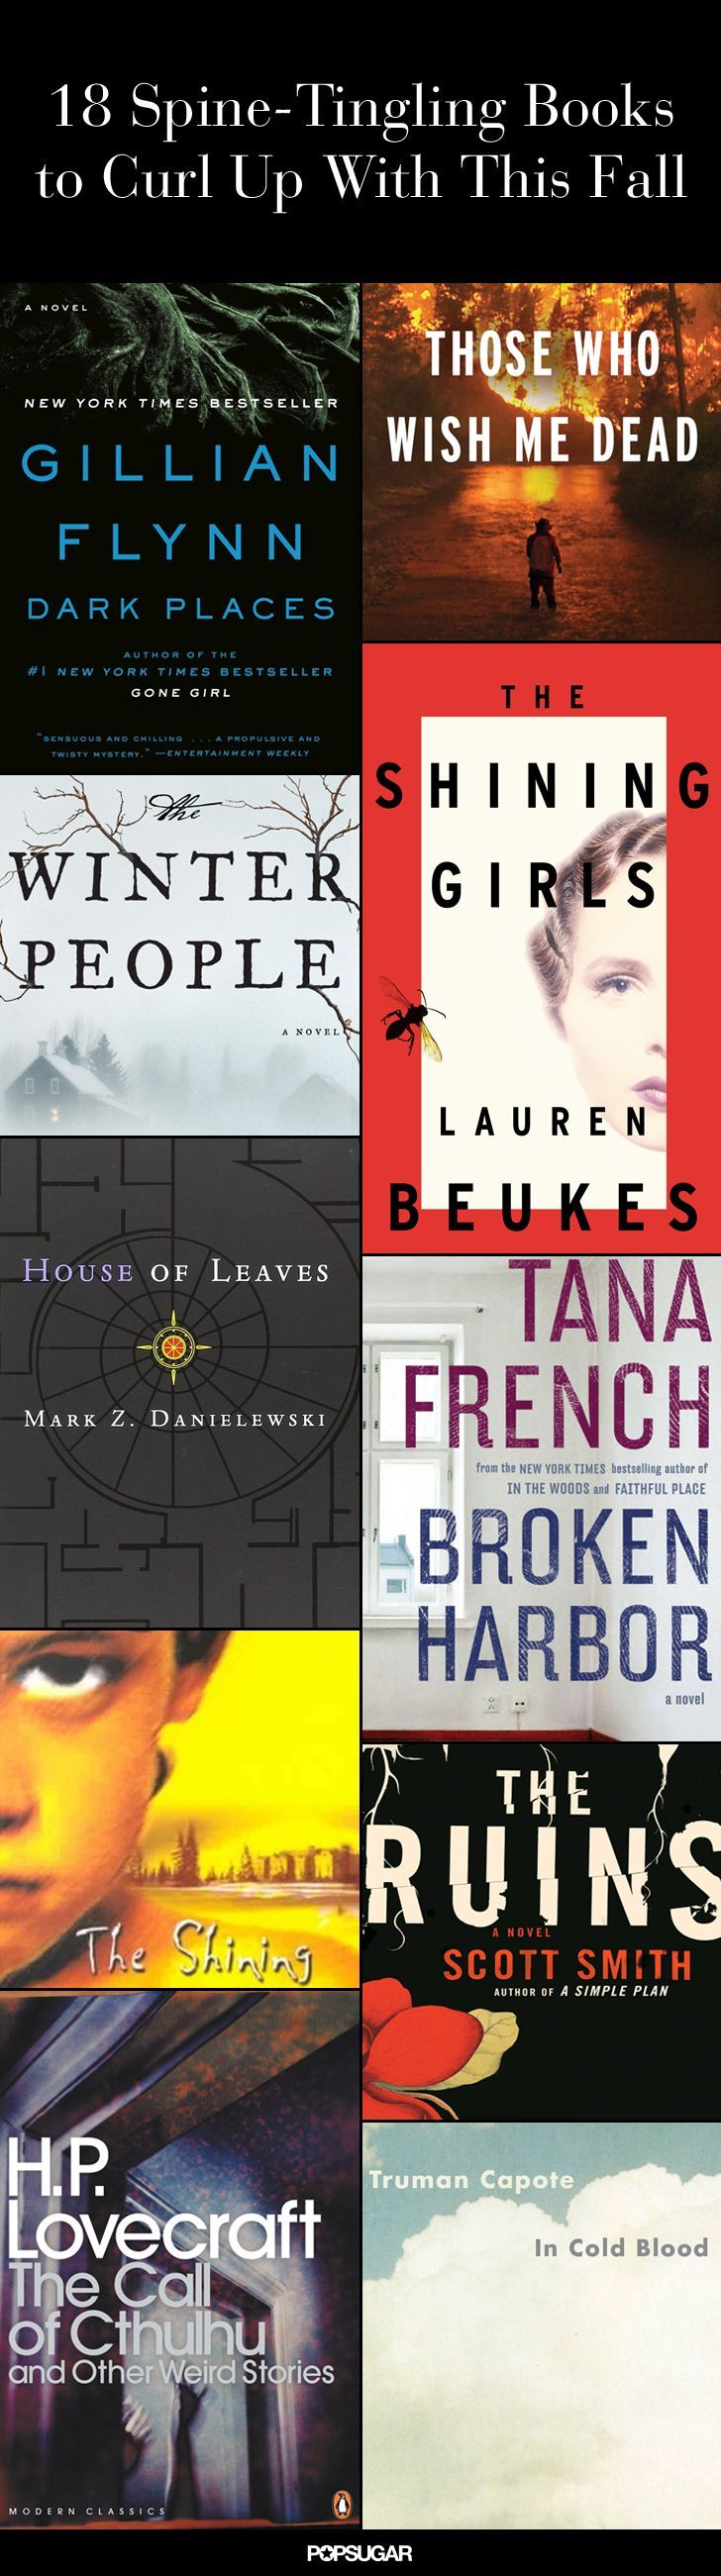 18 Spinetingling Books To Curl Up With This Fall